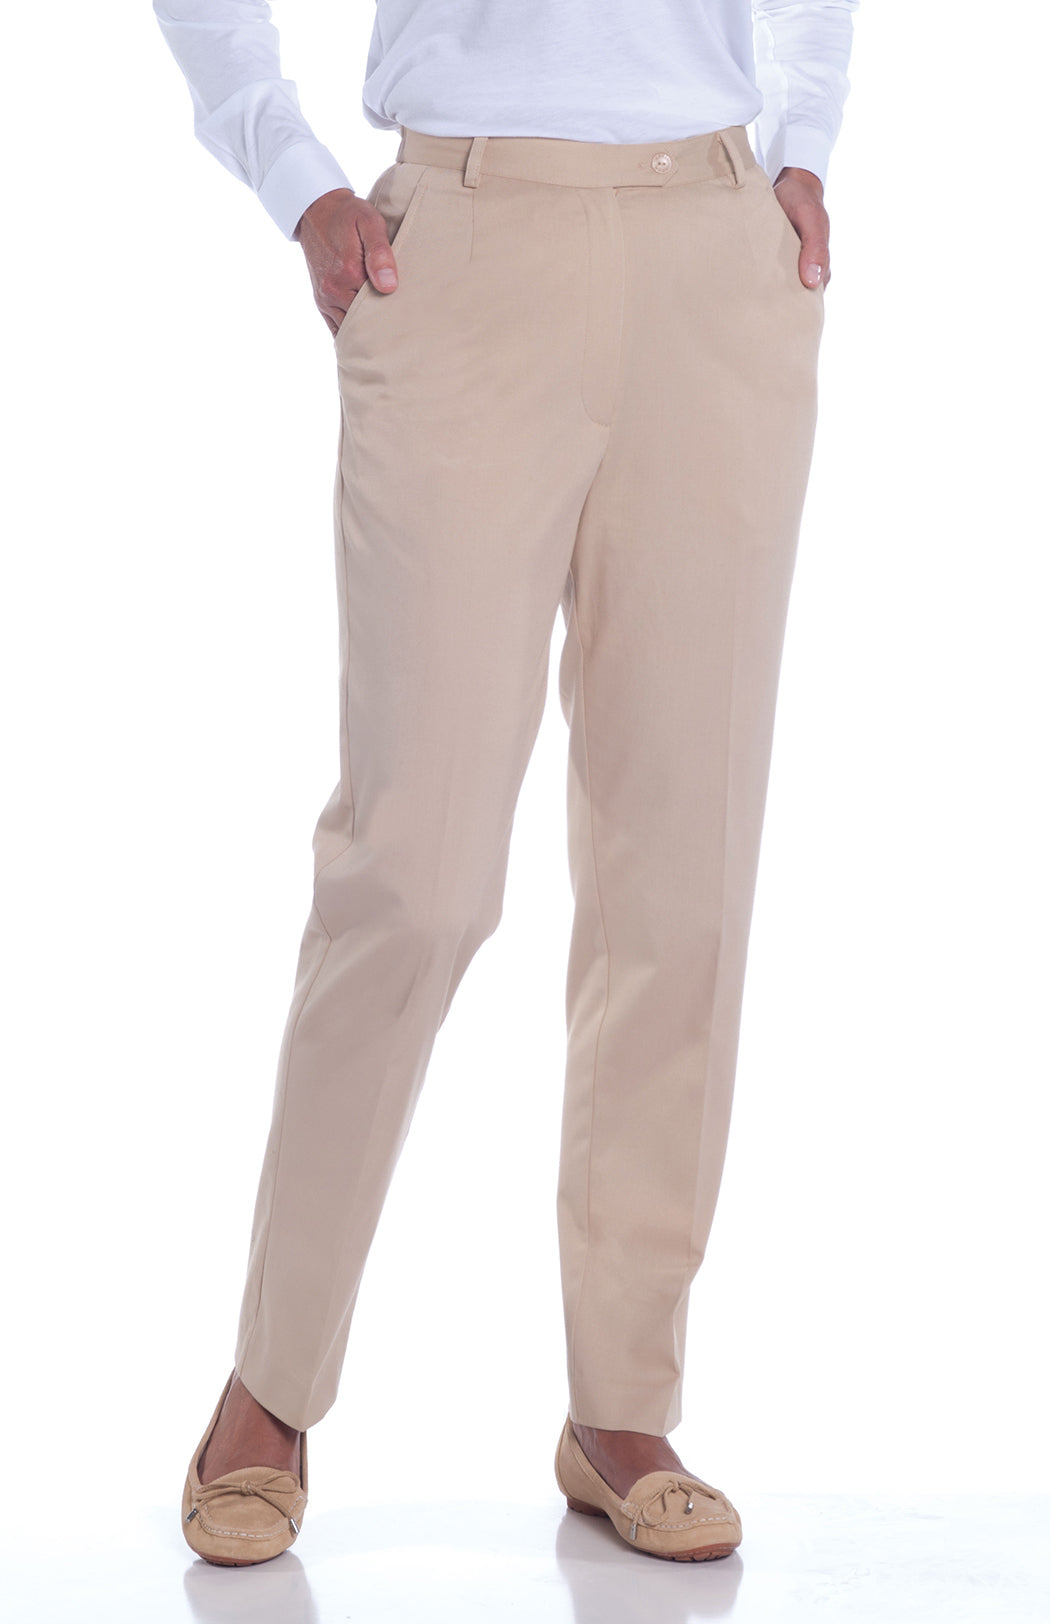 Stretch Twill Flat Front Pants | Sand S50 - Leonlevin